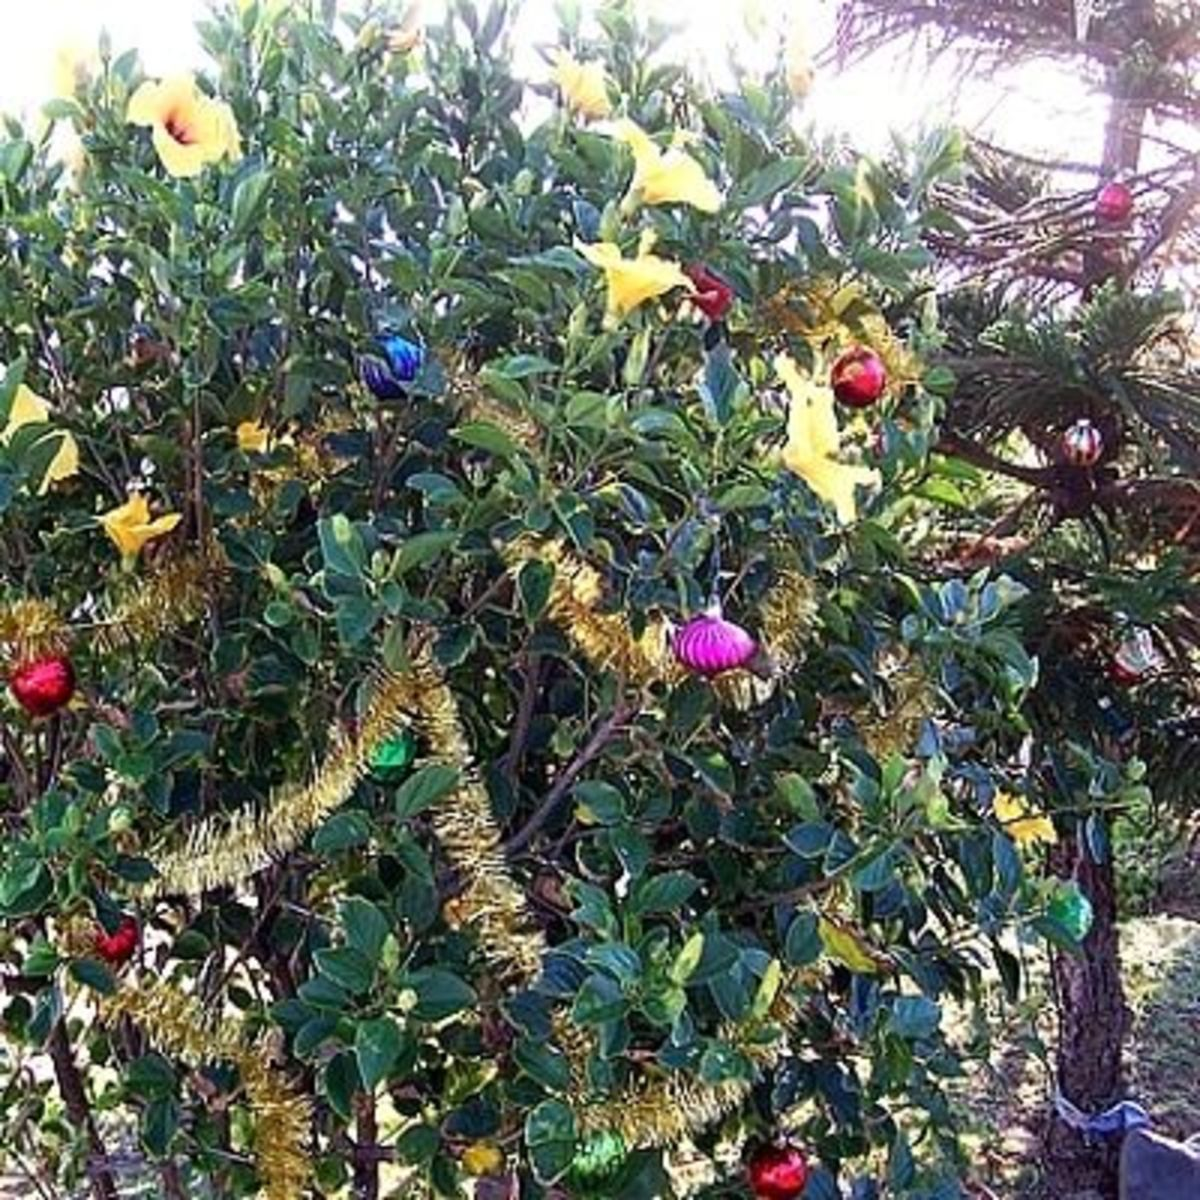 It's time to decorate the hibiscus bush